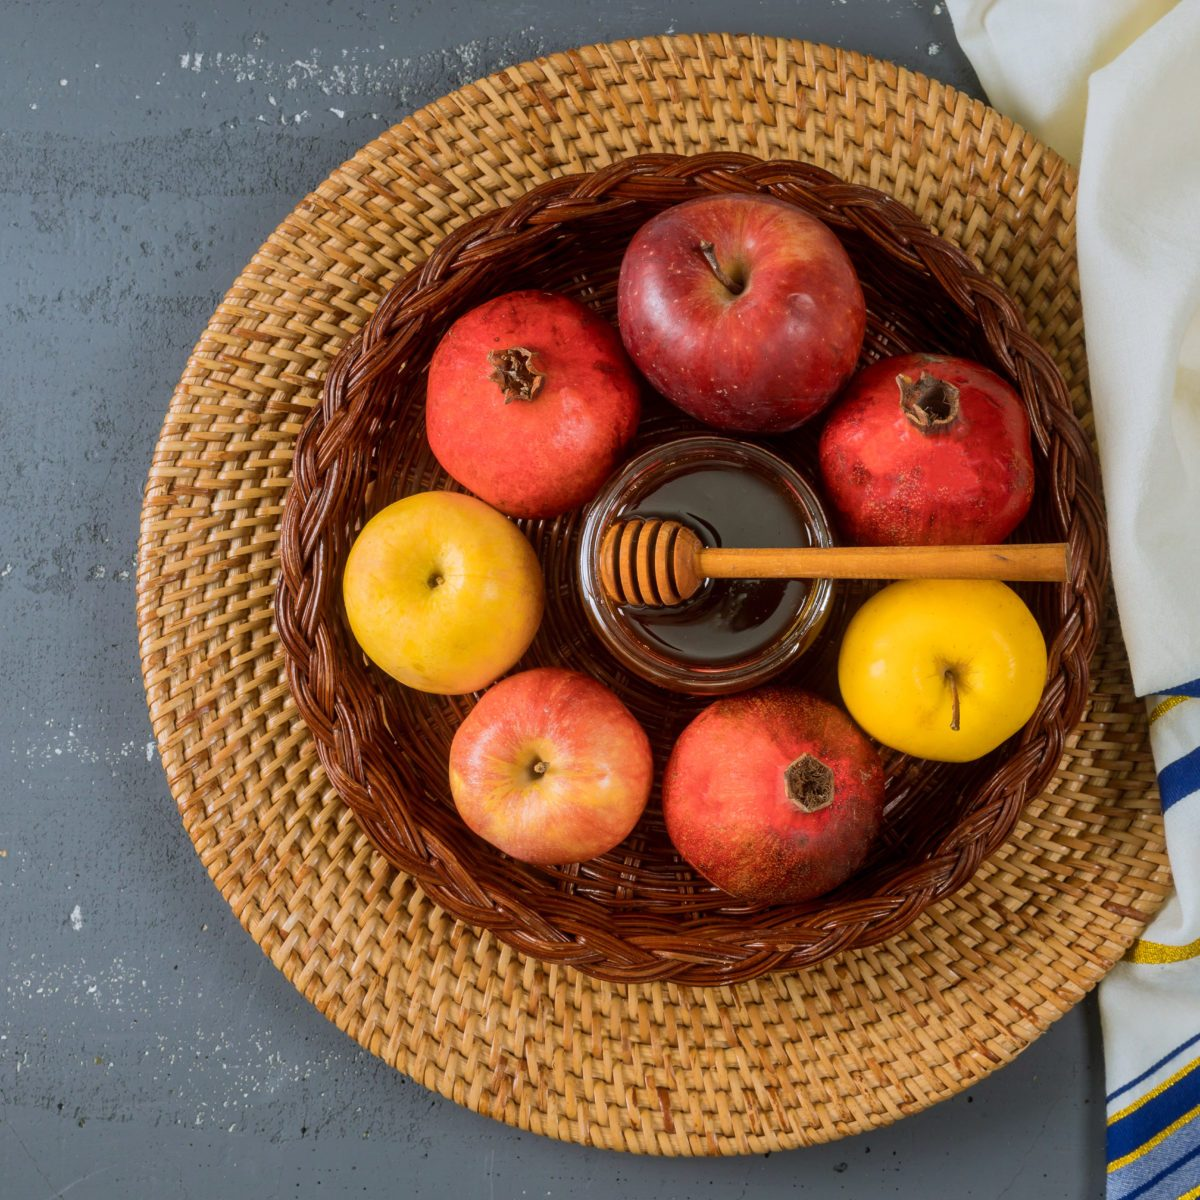 15 Rosh Hashanah Traditions You Should Celebrate This Year